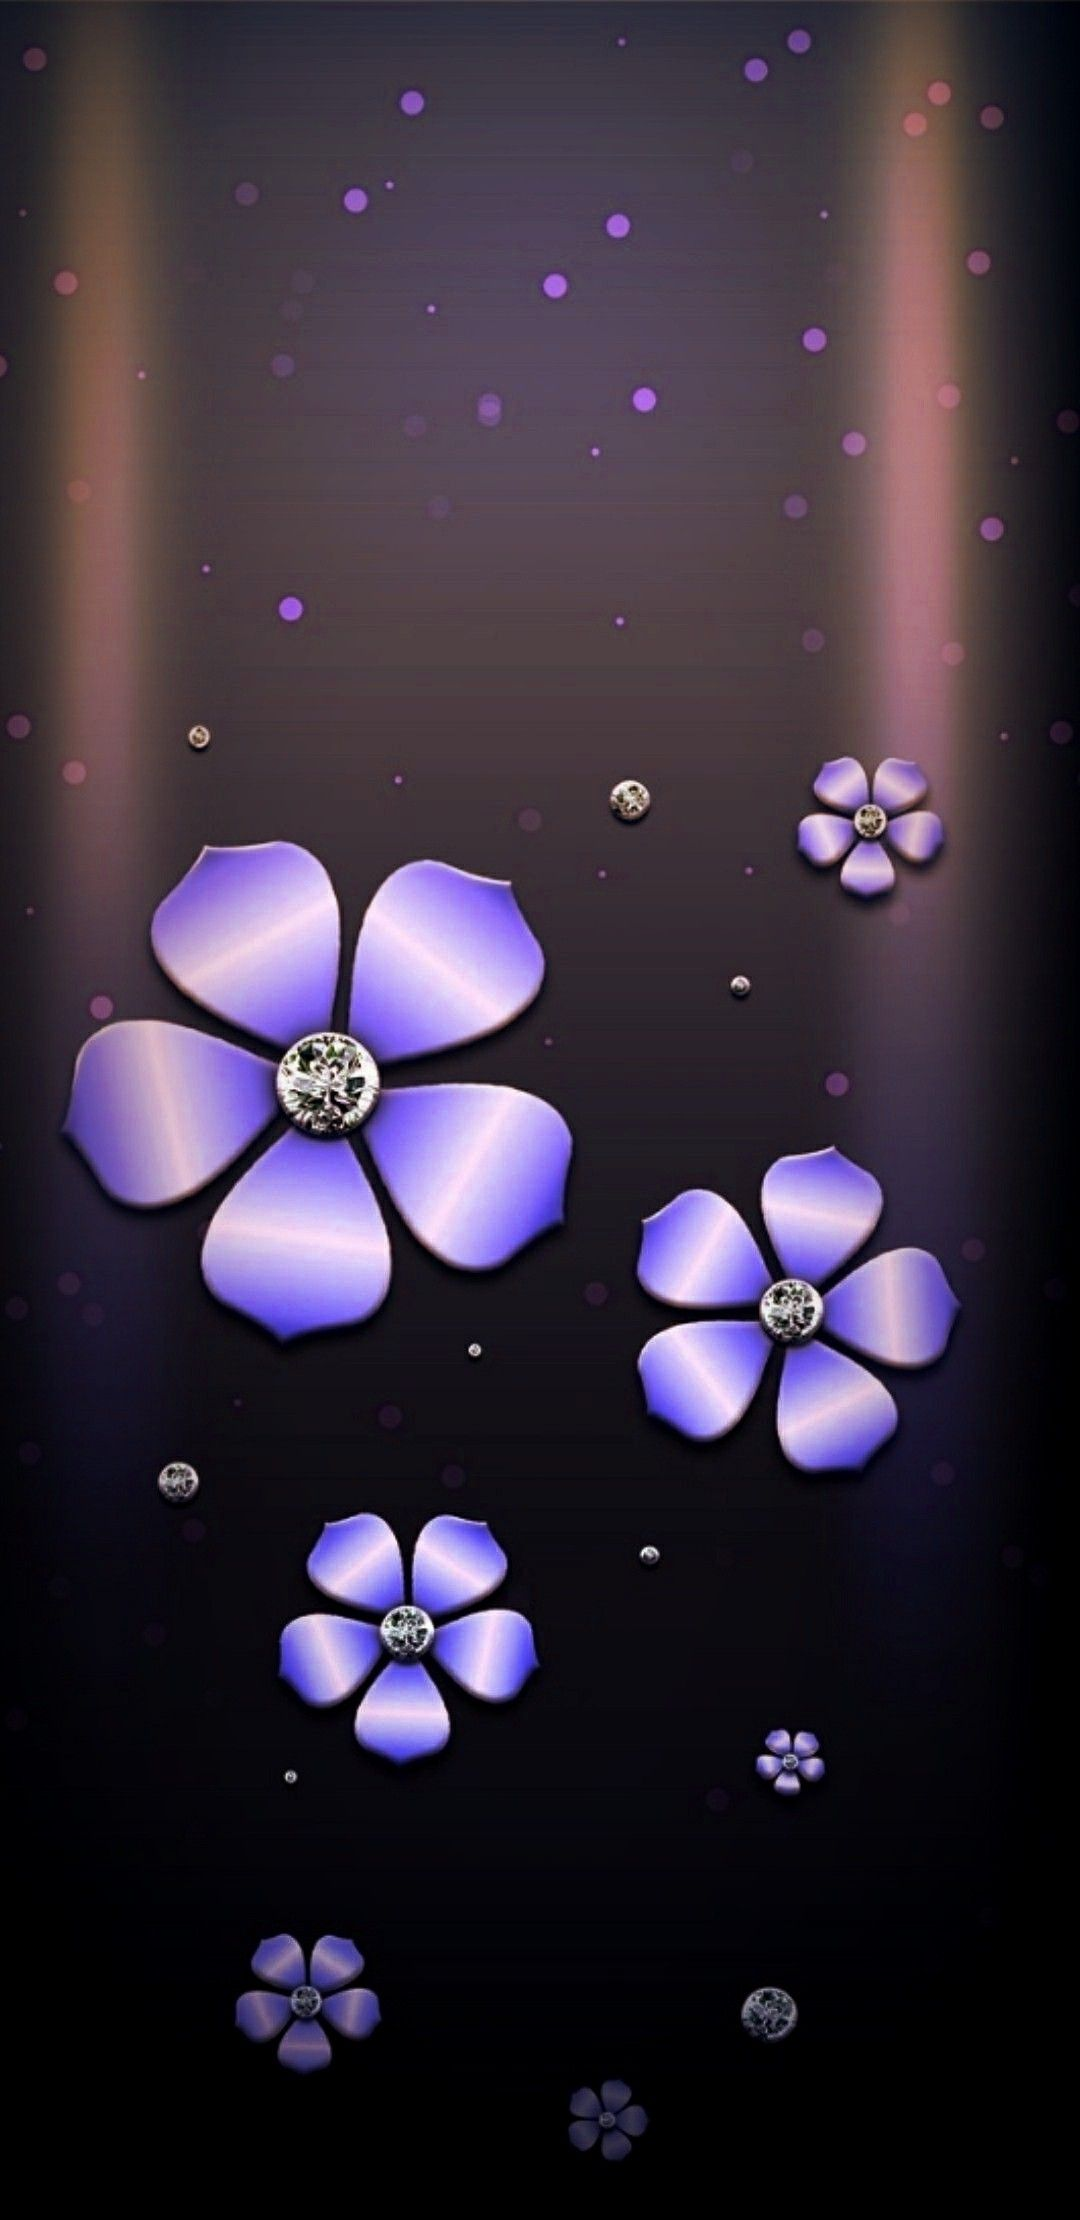 Black And Purple Flower Phone Wallpaper Iphone Wallpaper Flower Wallpaper